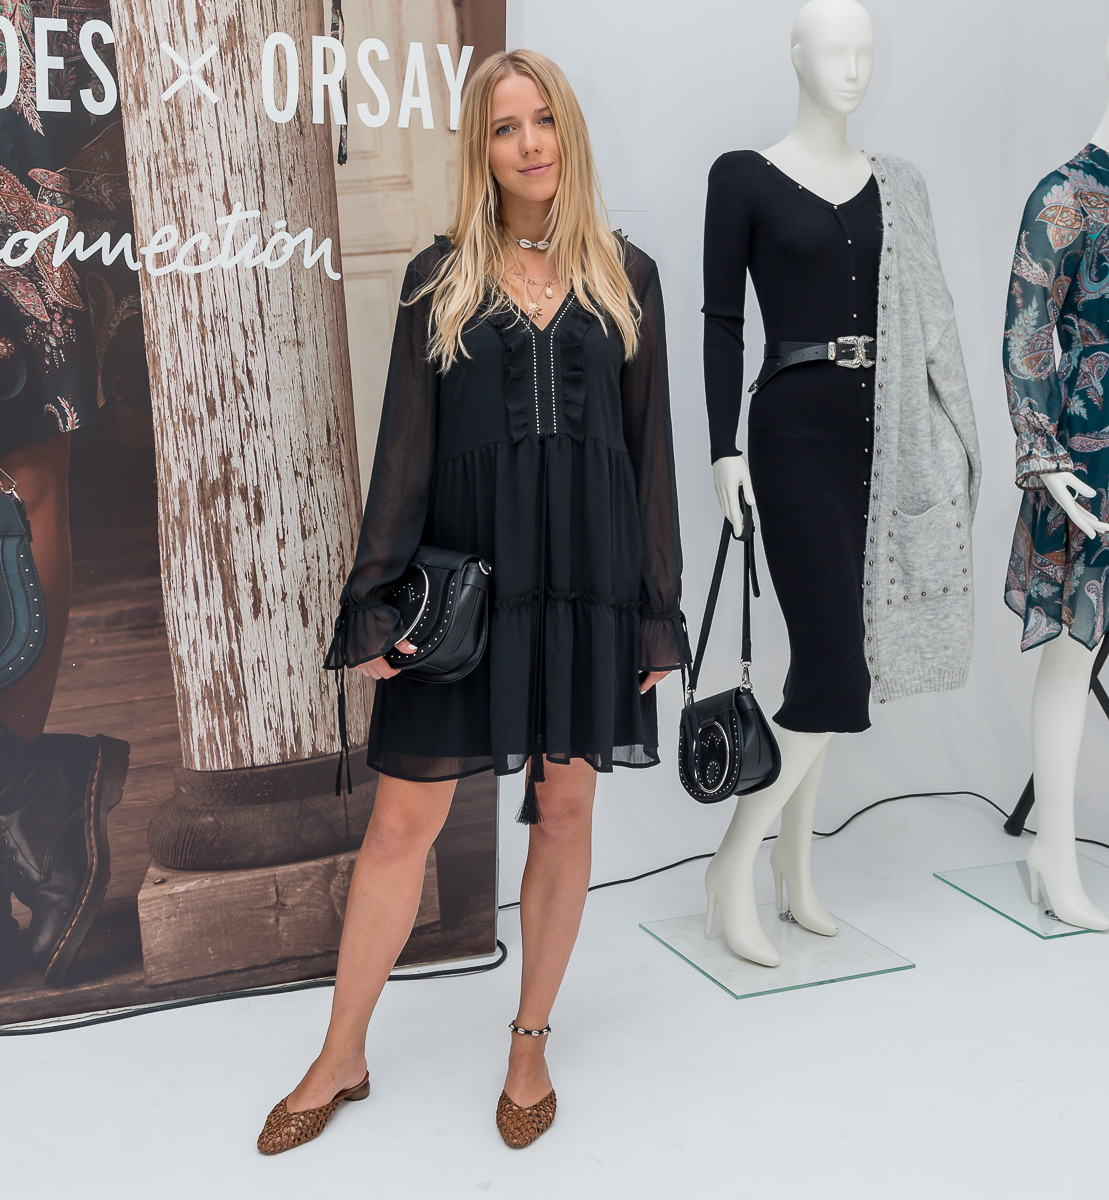 BlogStar: My Fashion Connection -    JESSICA MERCEDES x ORSAY  - BlogStar.pl